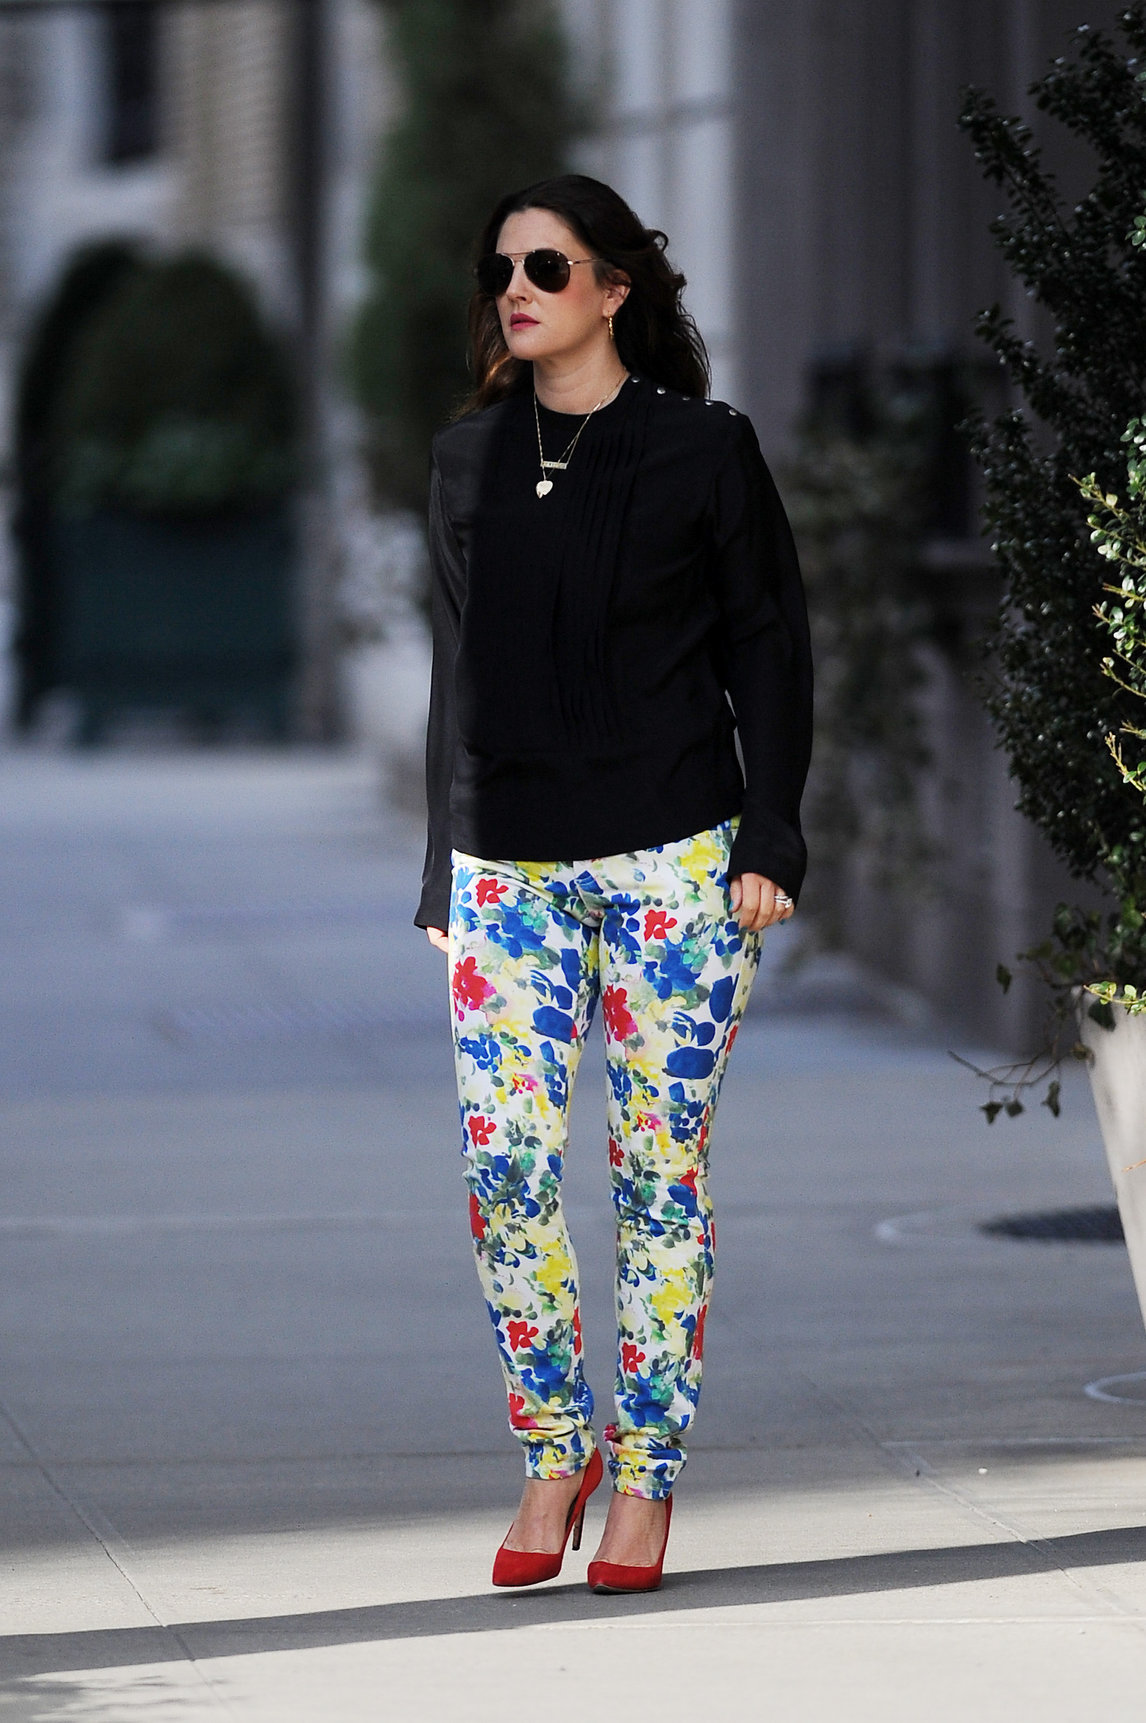 Drew Barrymore in cute leggings in New York City (21.03.2013)